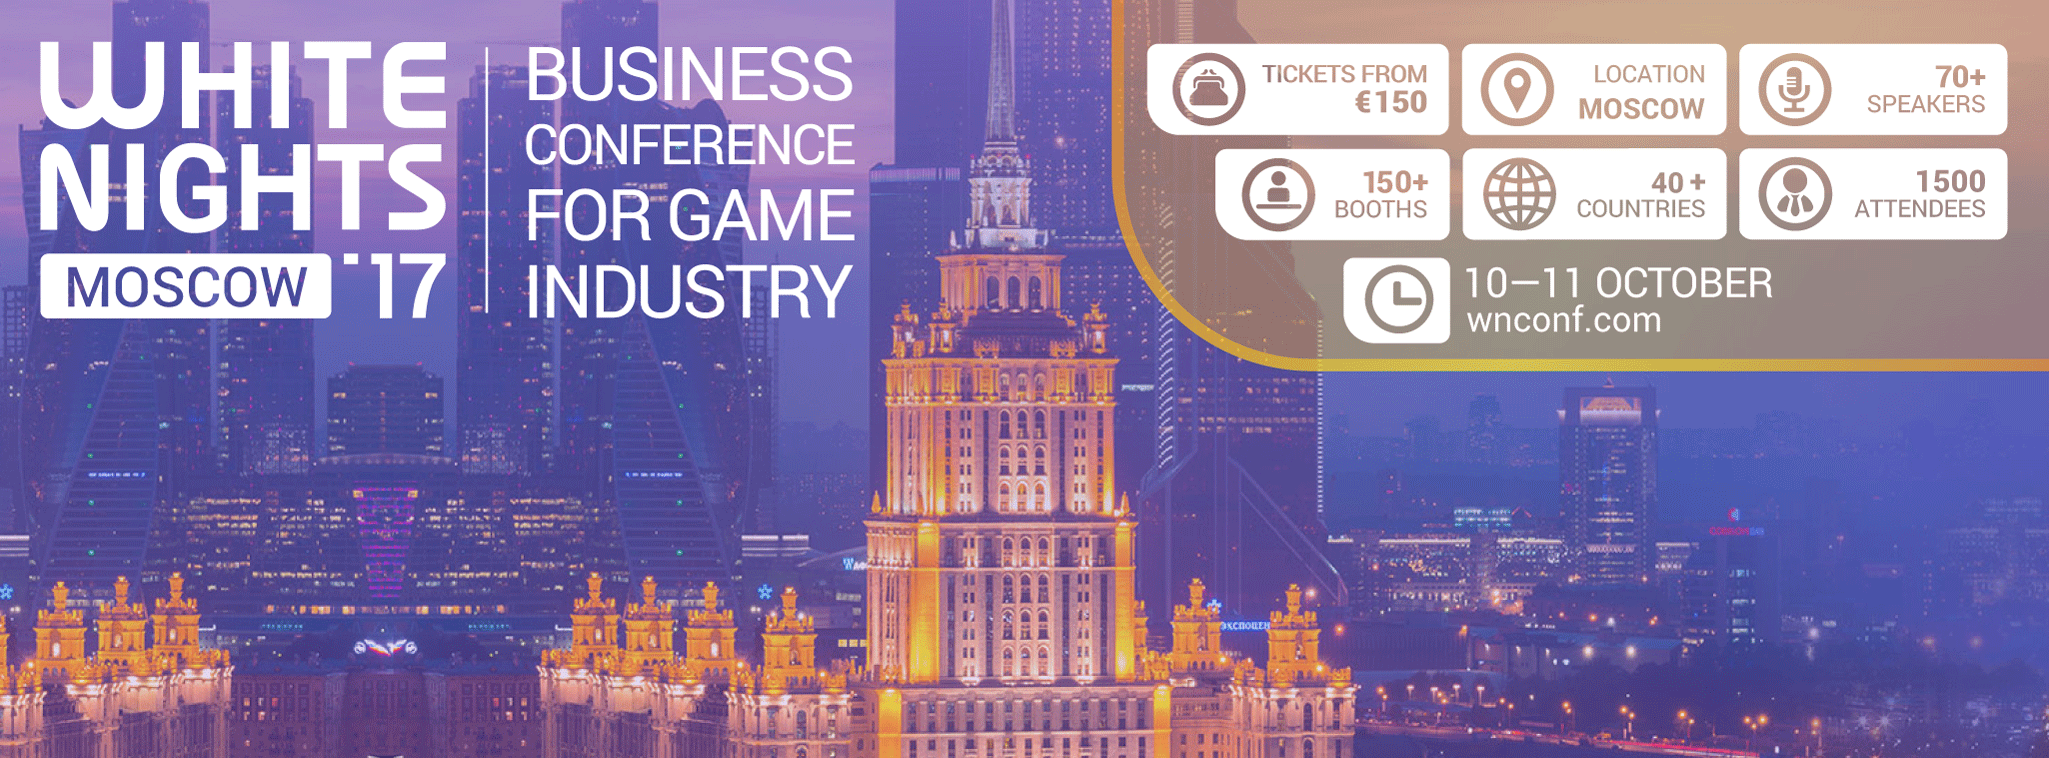 Don't miss out White Nights Conference in Moscow